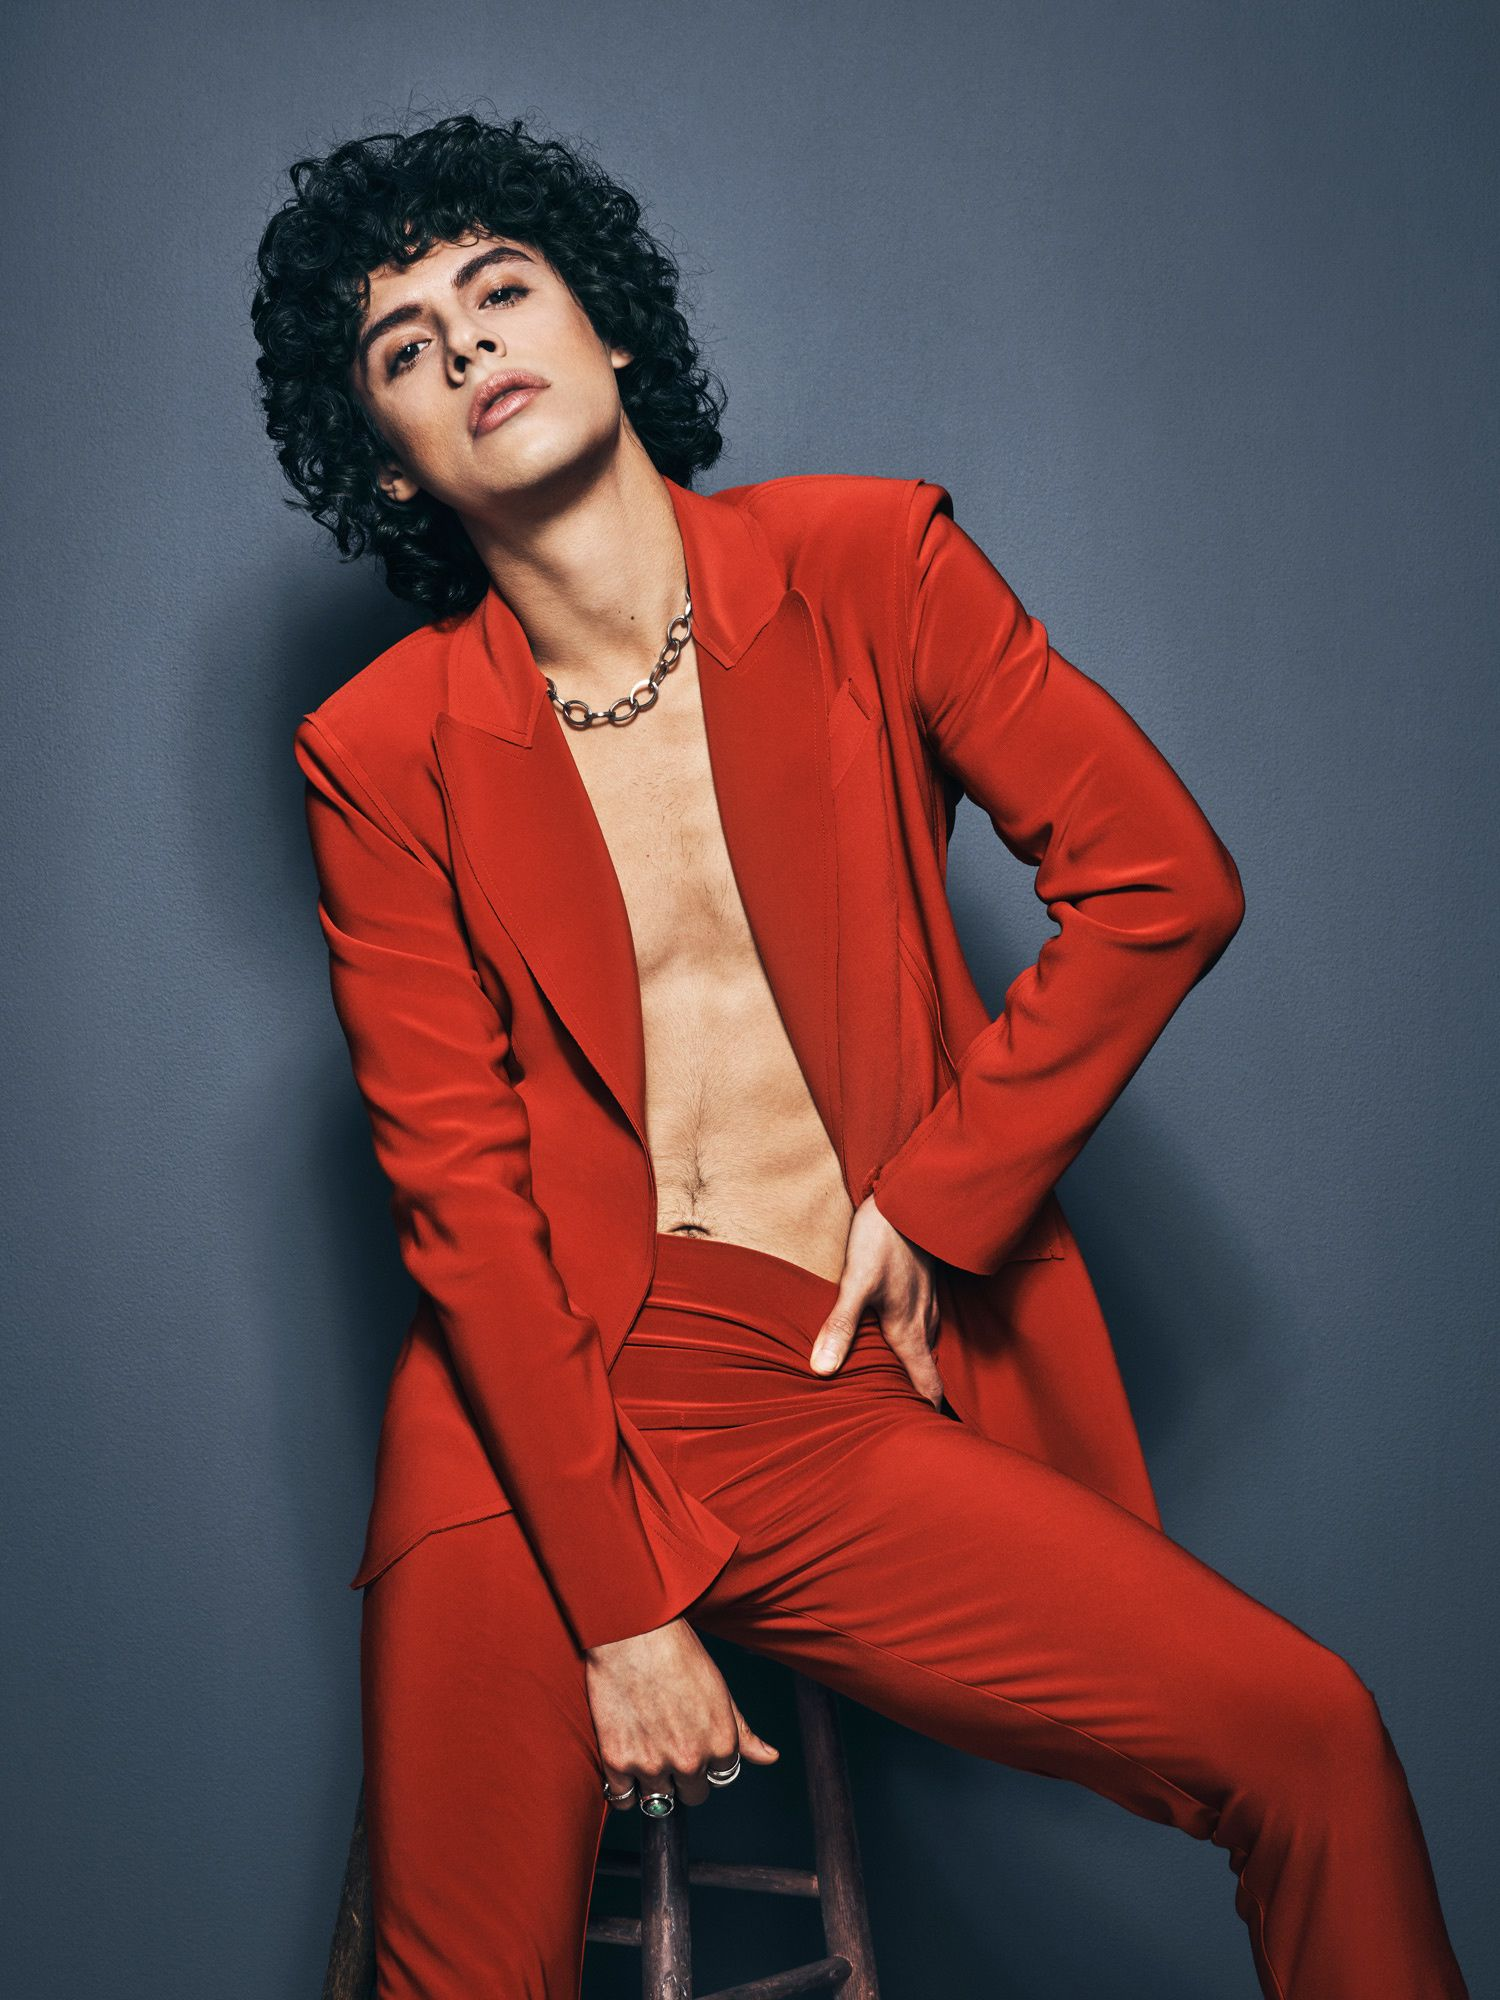 Jonny Beauchamp in a red suit.